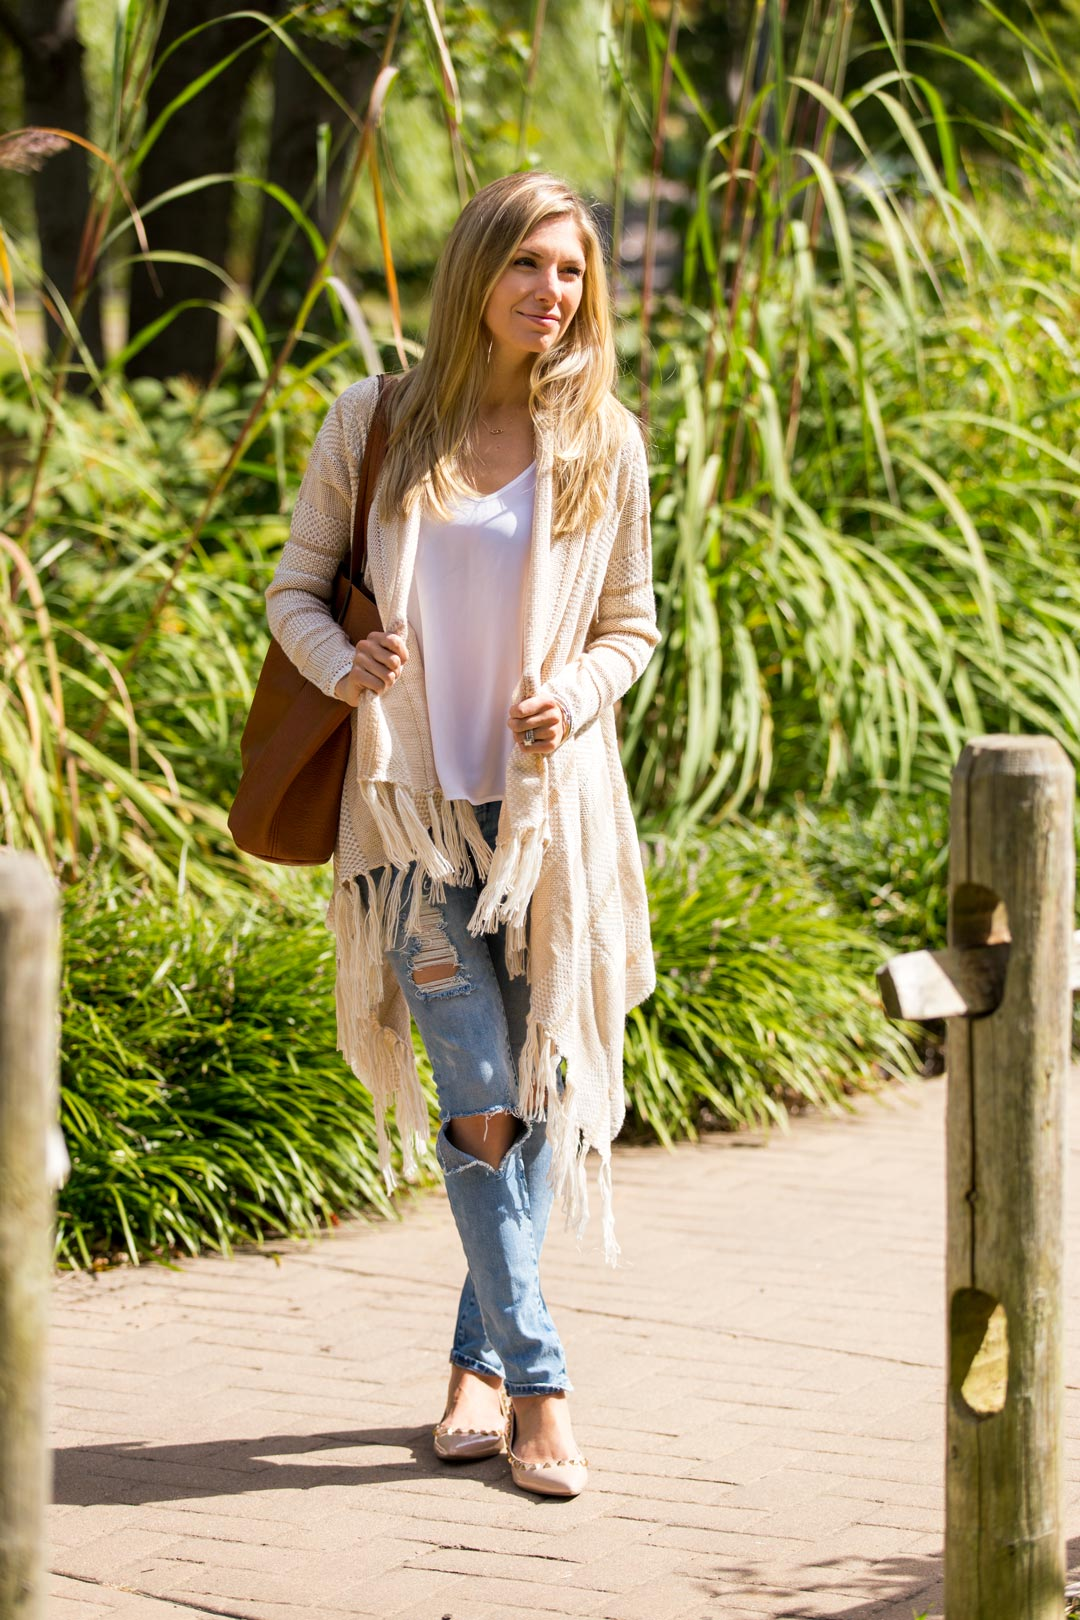 blank denim ripped jeans, studded flats and topshop tank top